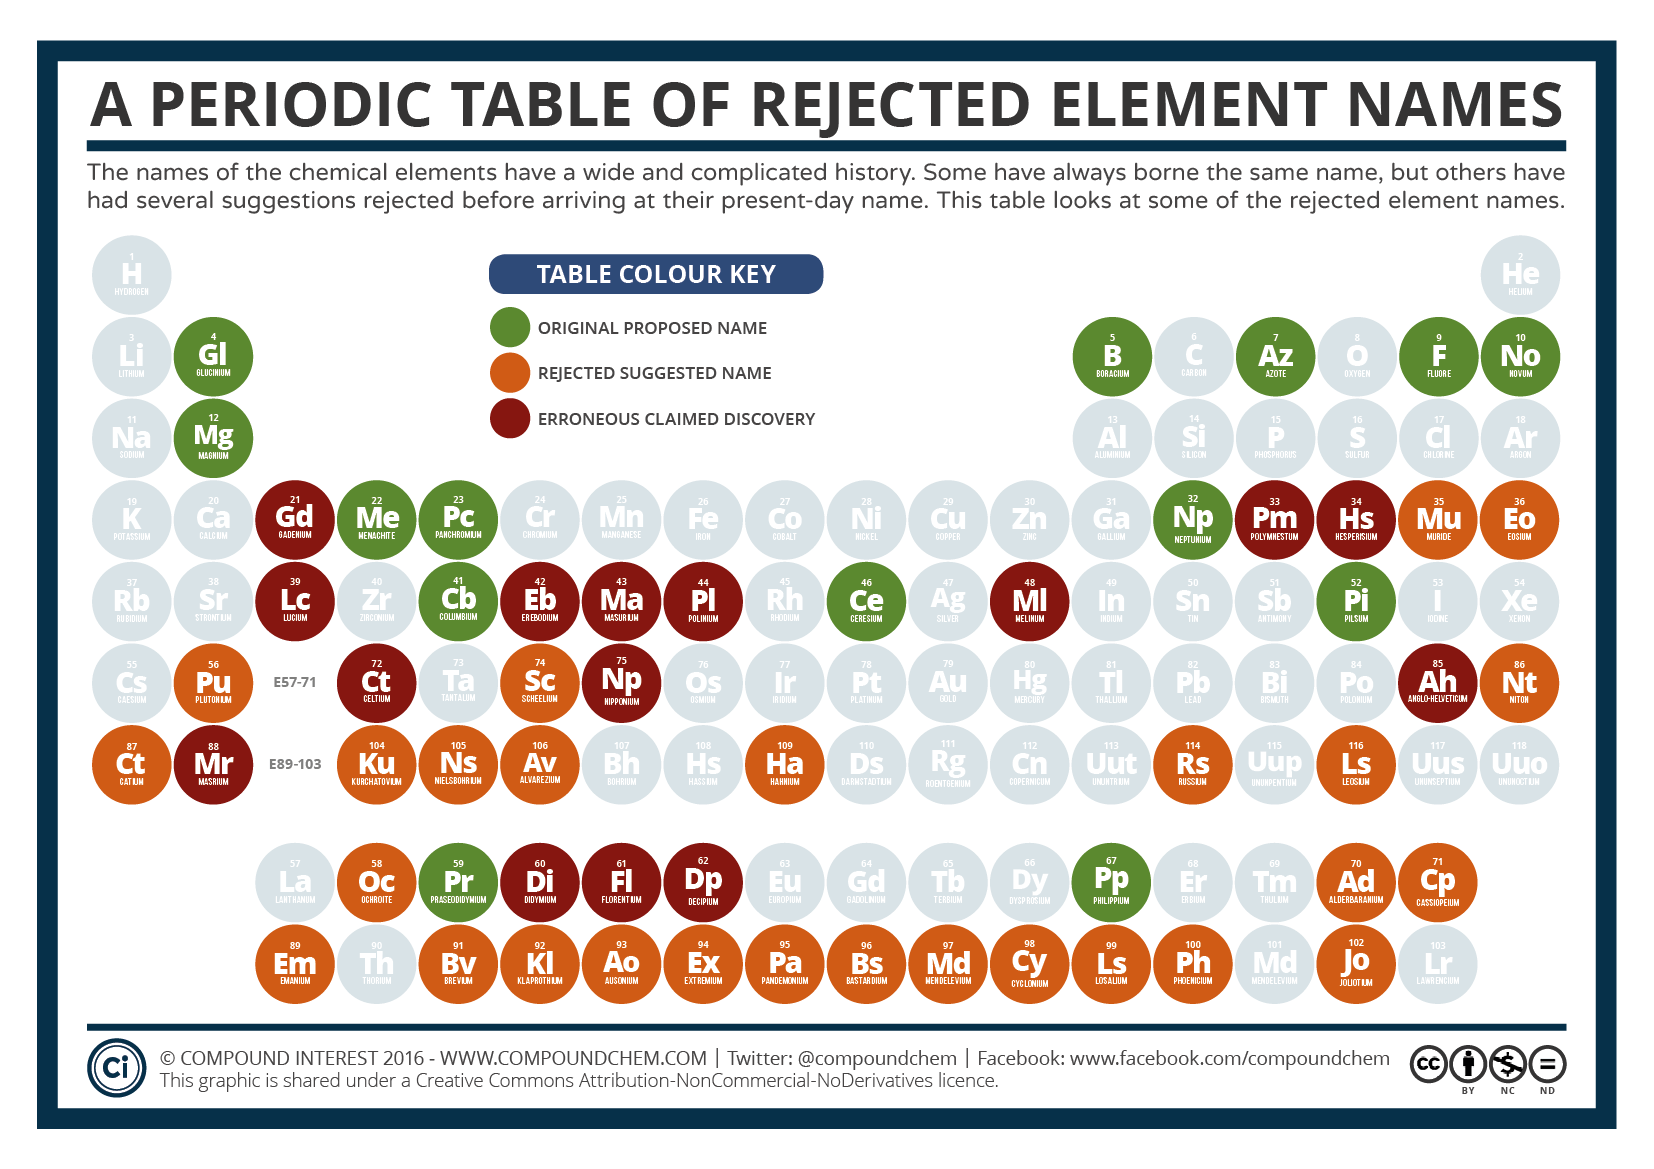 Compound interest a periodic table of rejected element names gamestrikefo Image collections